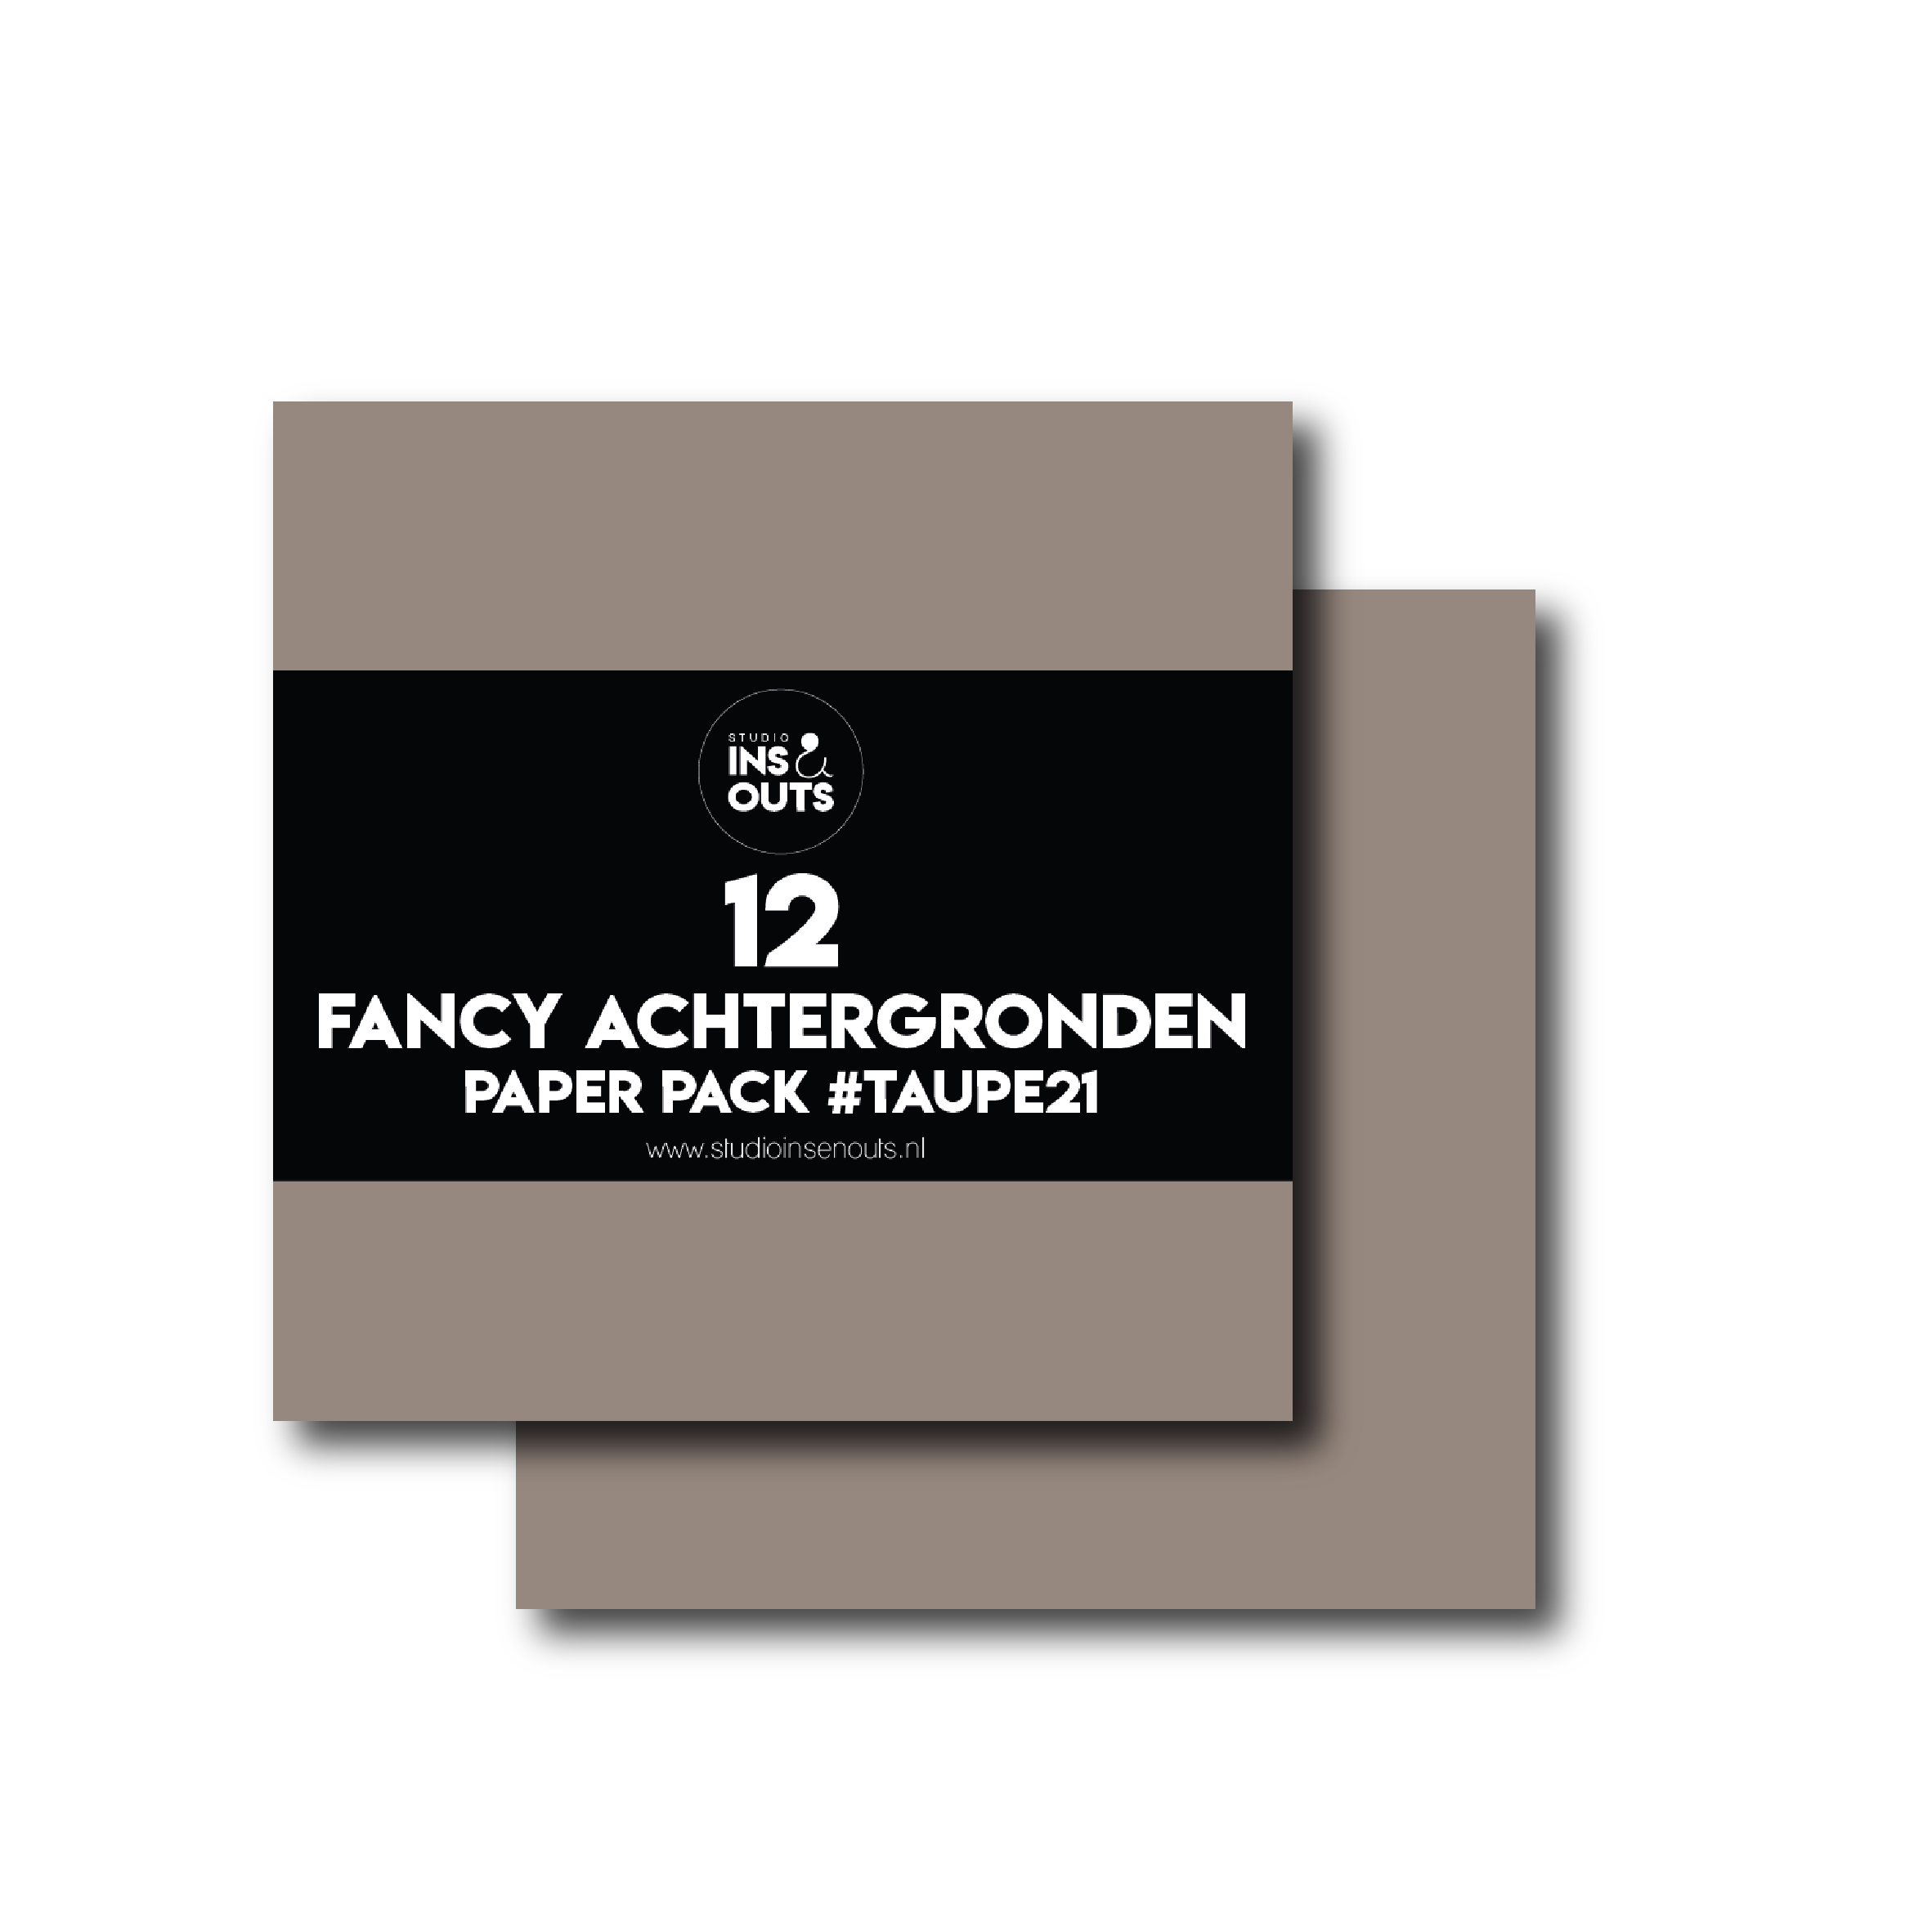 Paper pack TAUPE 2021